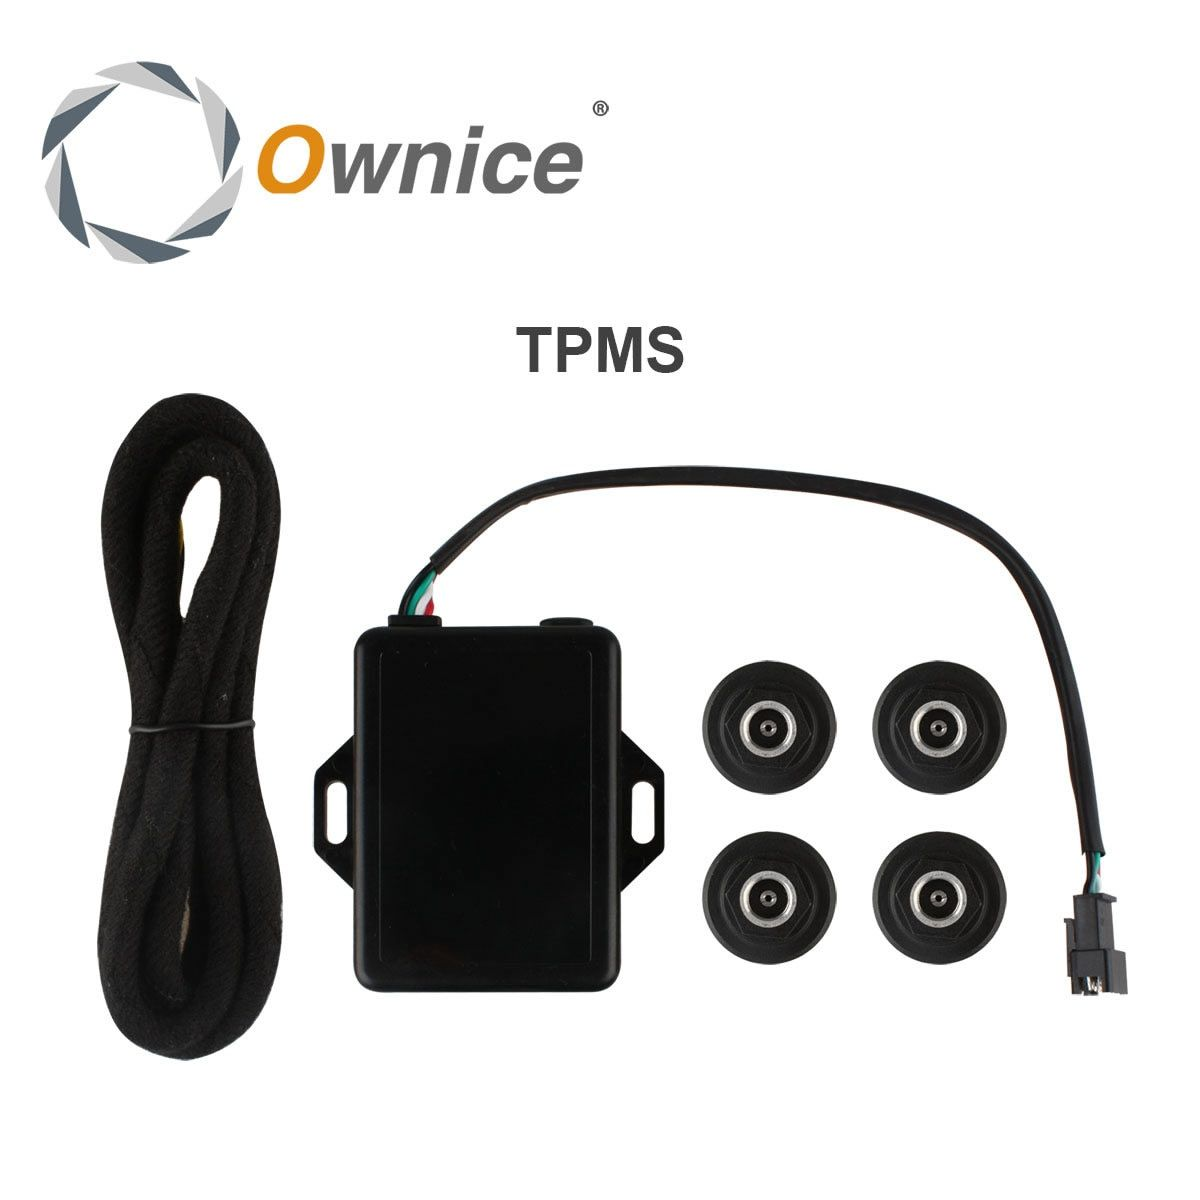 Special Car Tire Pressure System Only for ownice display the tempreature and pressure with high degree accuracy